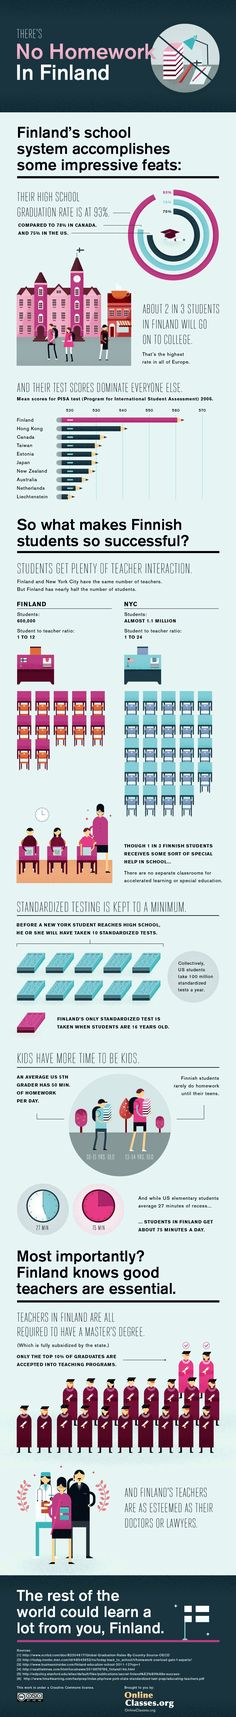 There's No Homework In Finland ~ What Makes Finnish Students so Successful? #Infographic